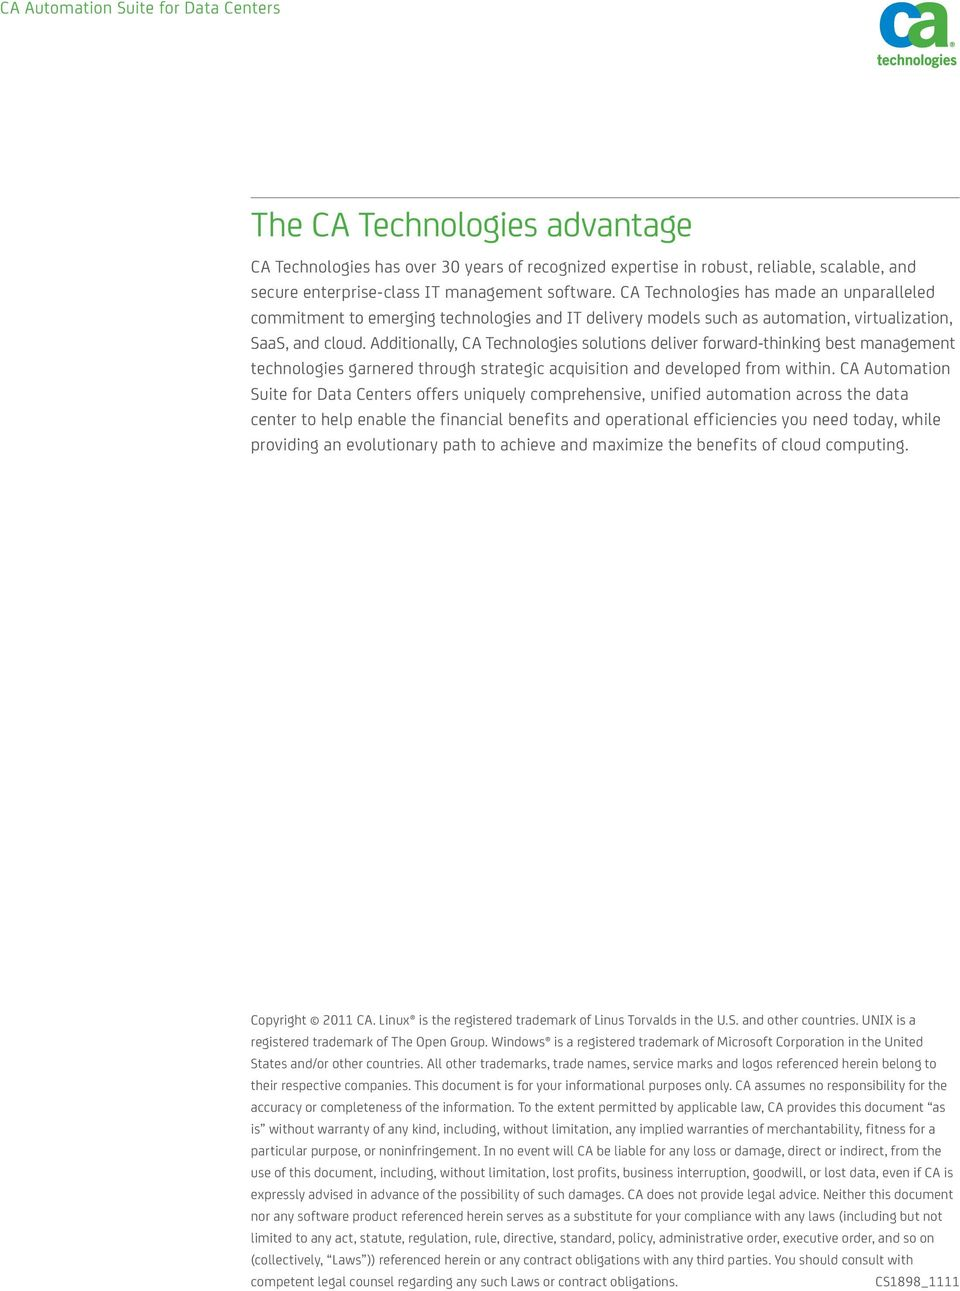 Additionally, CA Technologies solutions deliver forward-thinking best management technologies garnered through strategic acquisition and developed from within.